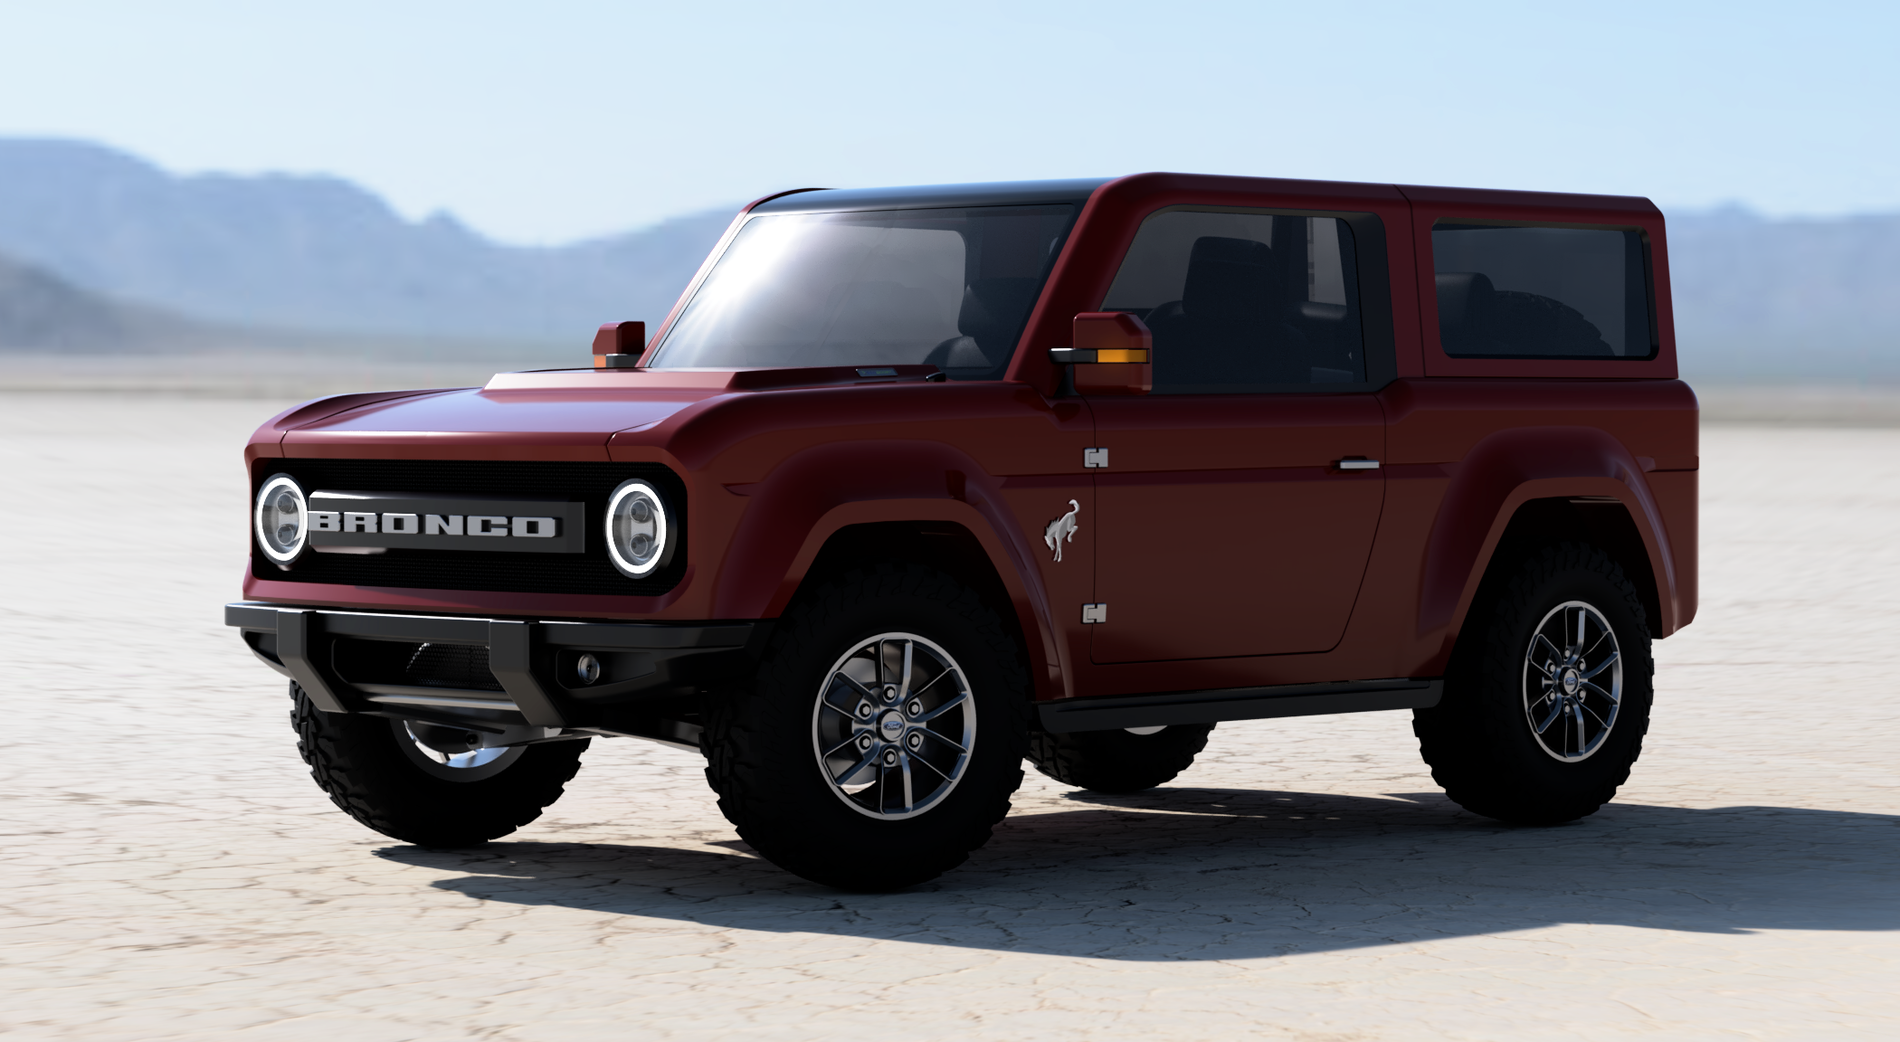 [Unofficial] Production Bronco Renders based on Bronco R